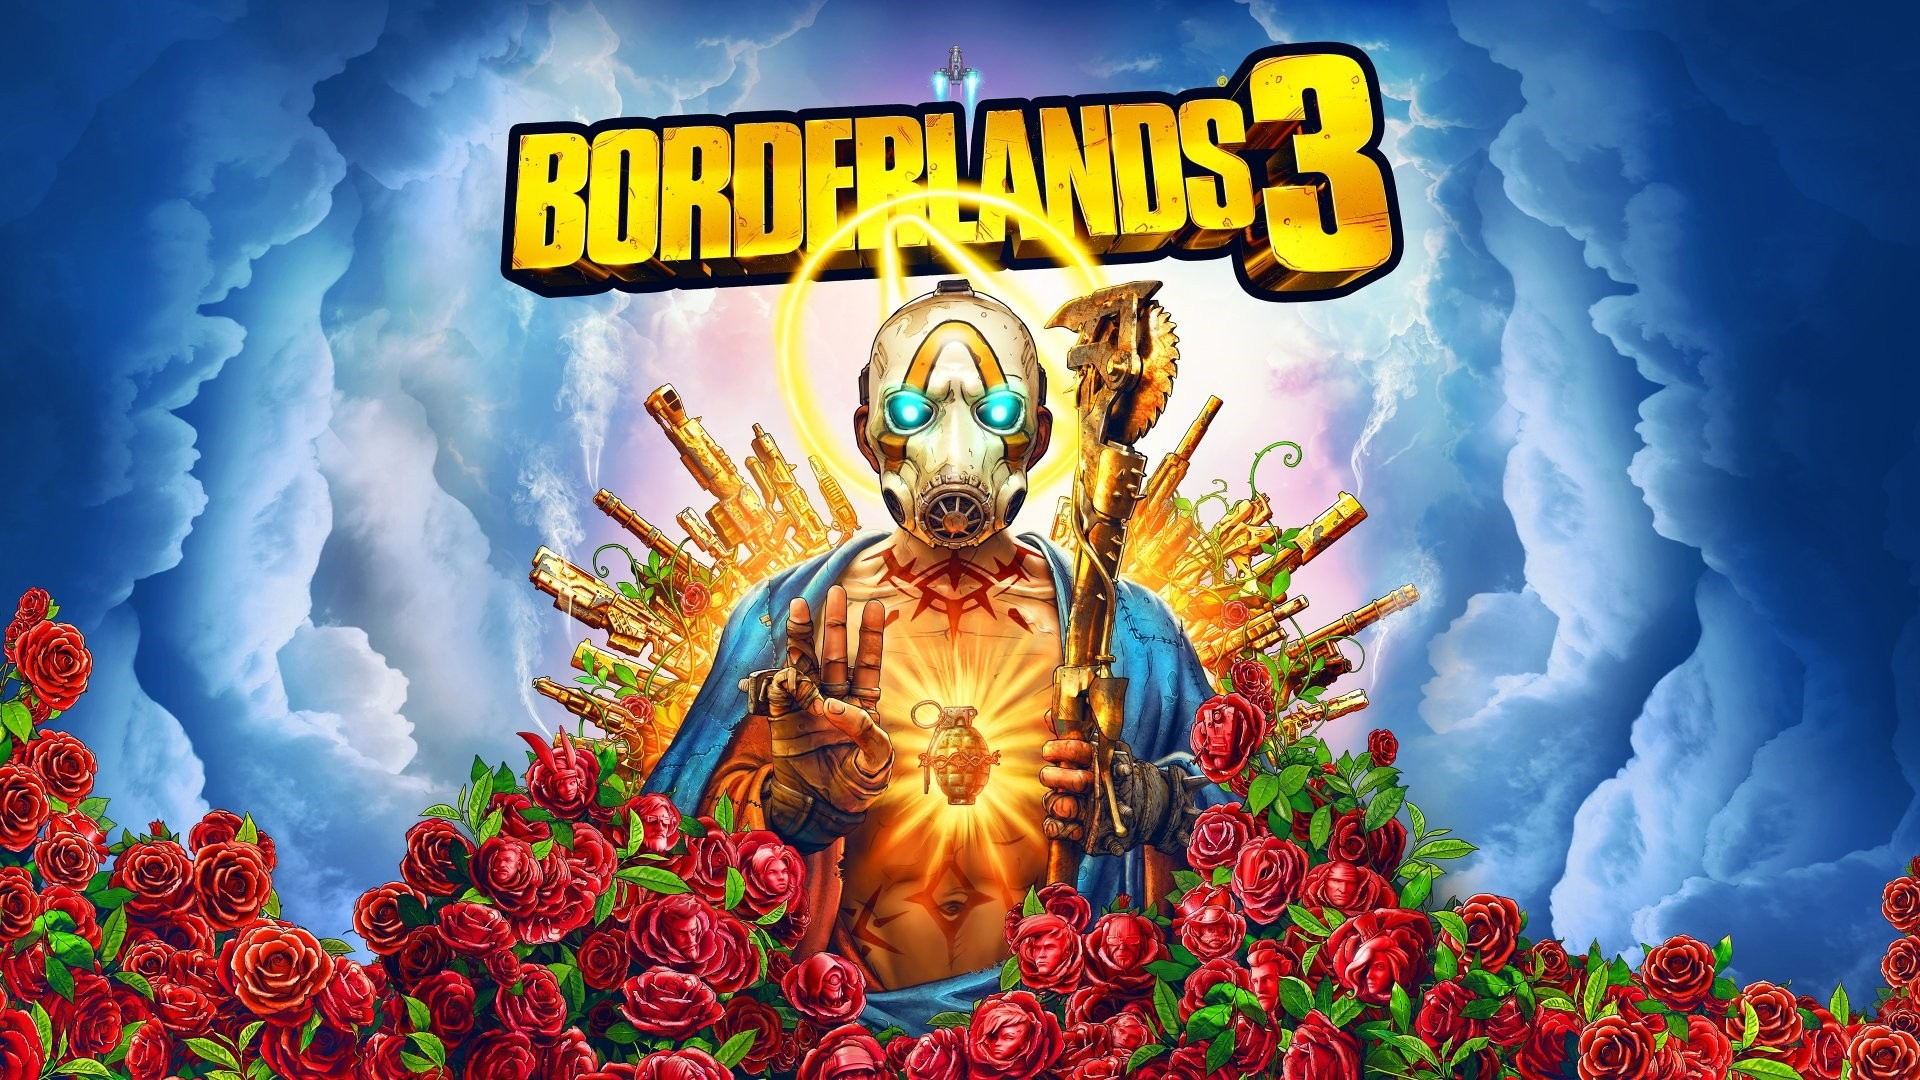 Borderlands 3 Wallpaper for pc